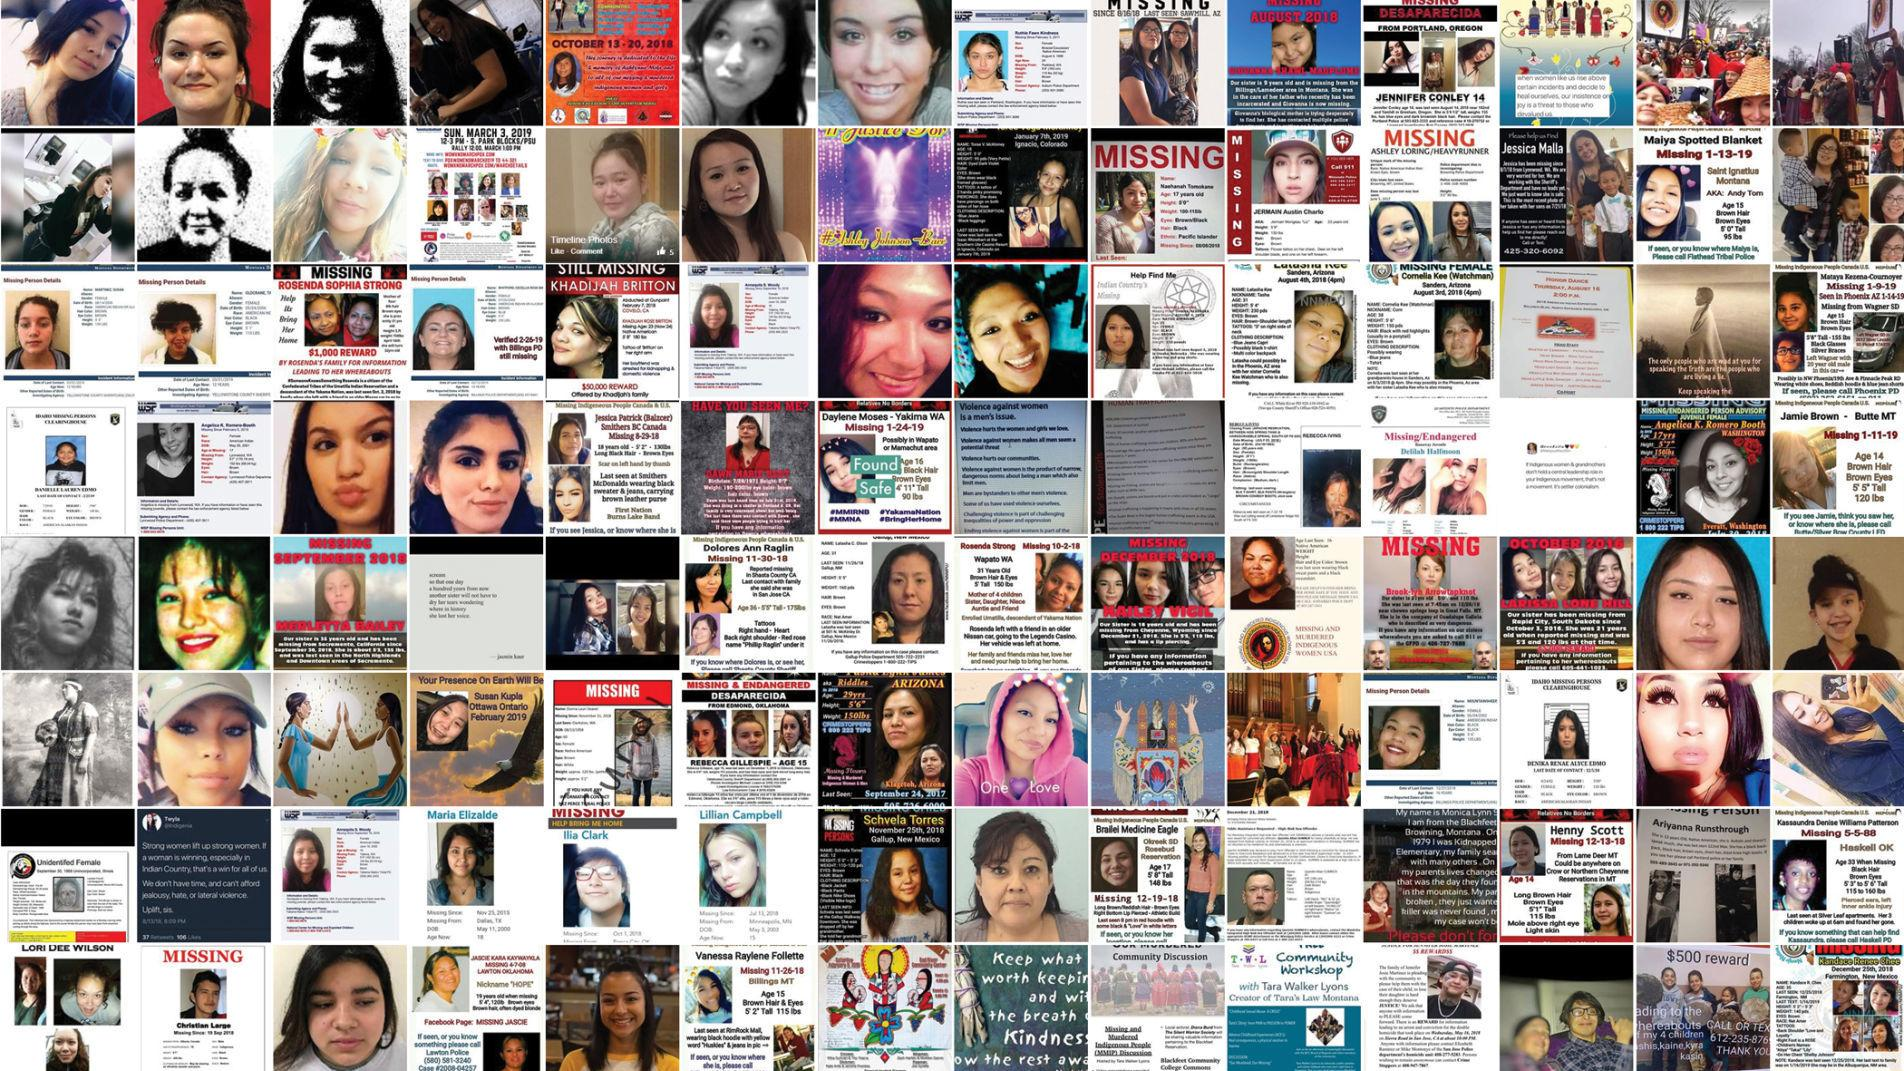 When government fails, indigenous women take their search for missing loved  ones online   Missing and Murdered Indigenous Women   billingsgazette.com